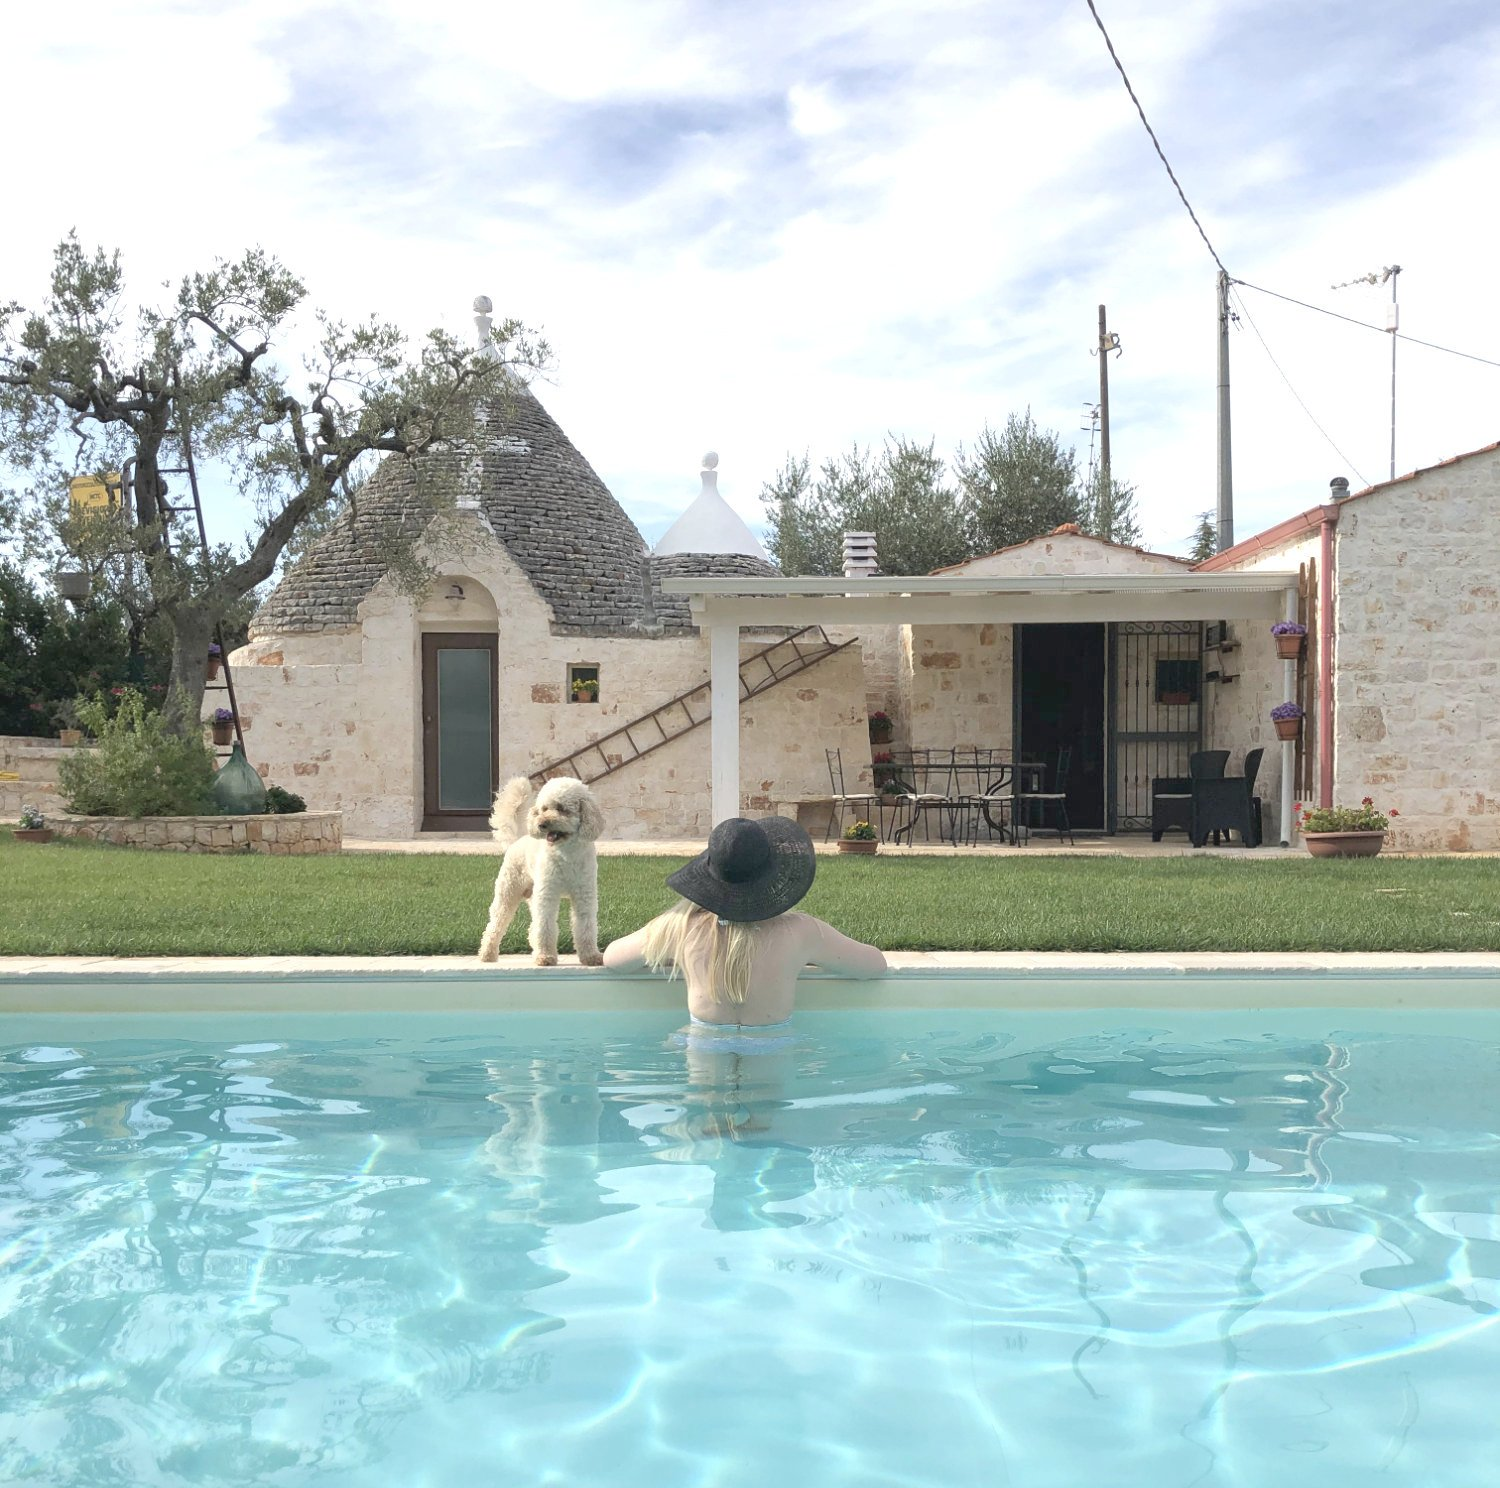 scandinavian-feeling-trullo-puglia-italy-pool